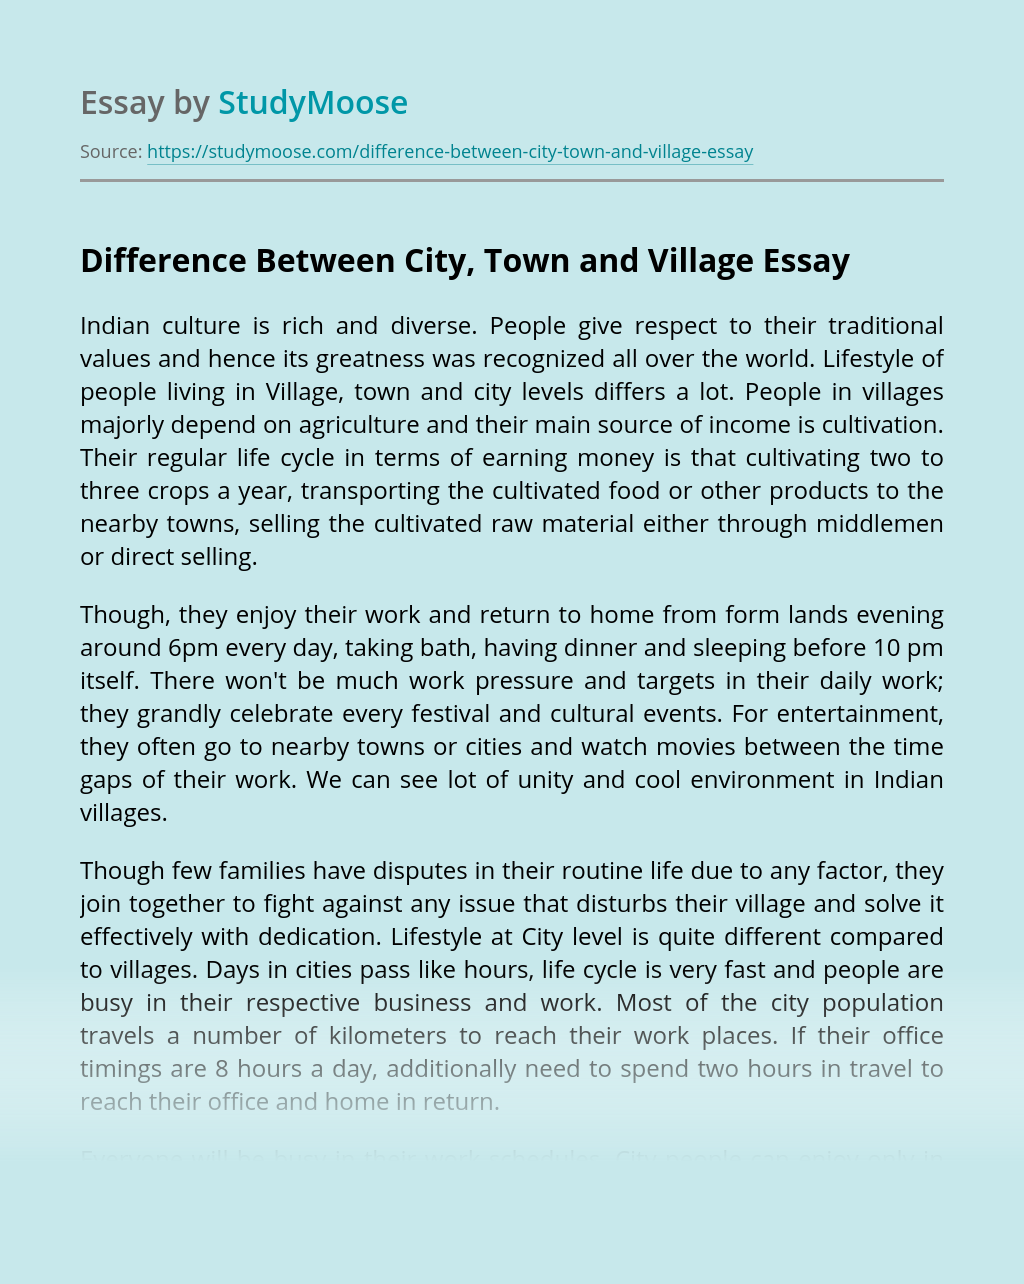 Difference Between City, Town and Village